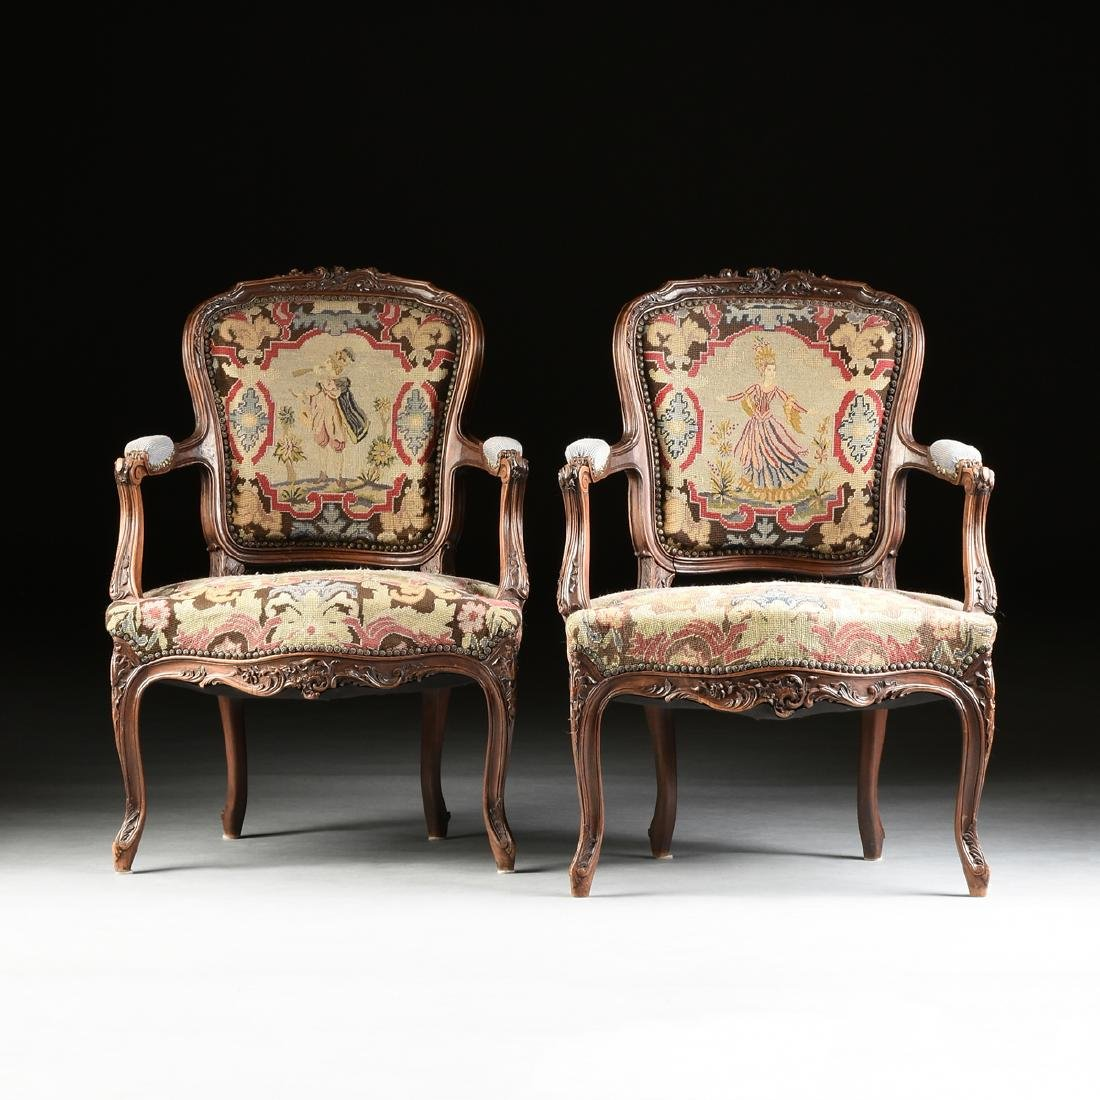 A PAIR OF LOUIS XV STYLE NEEDLEPOINT UPHOLSTERED WALNUT